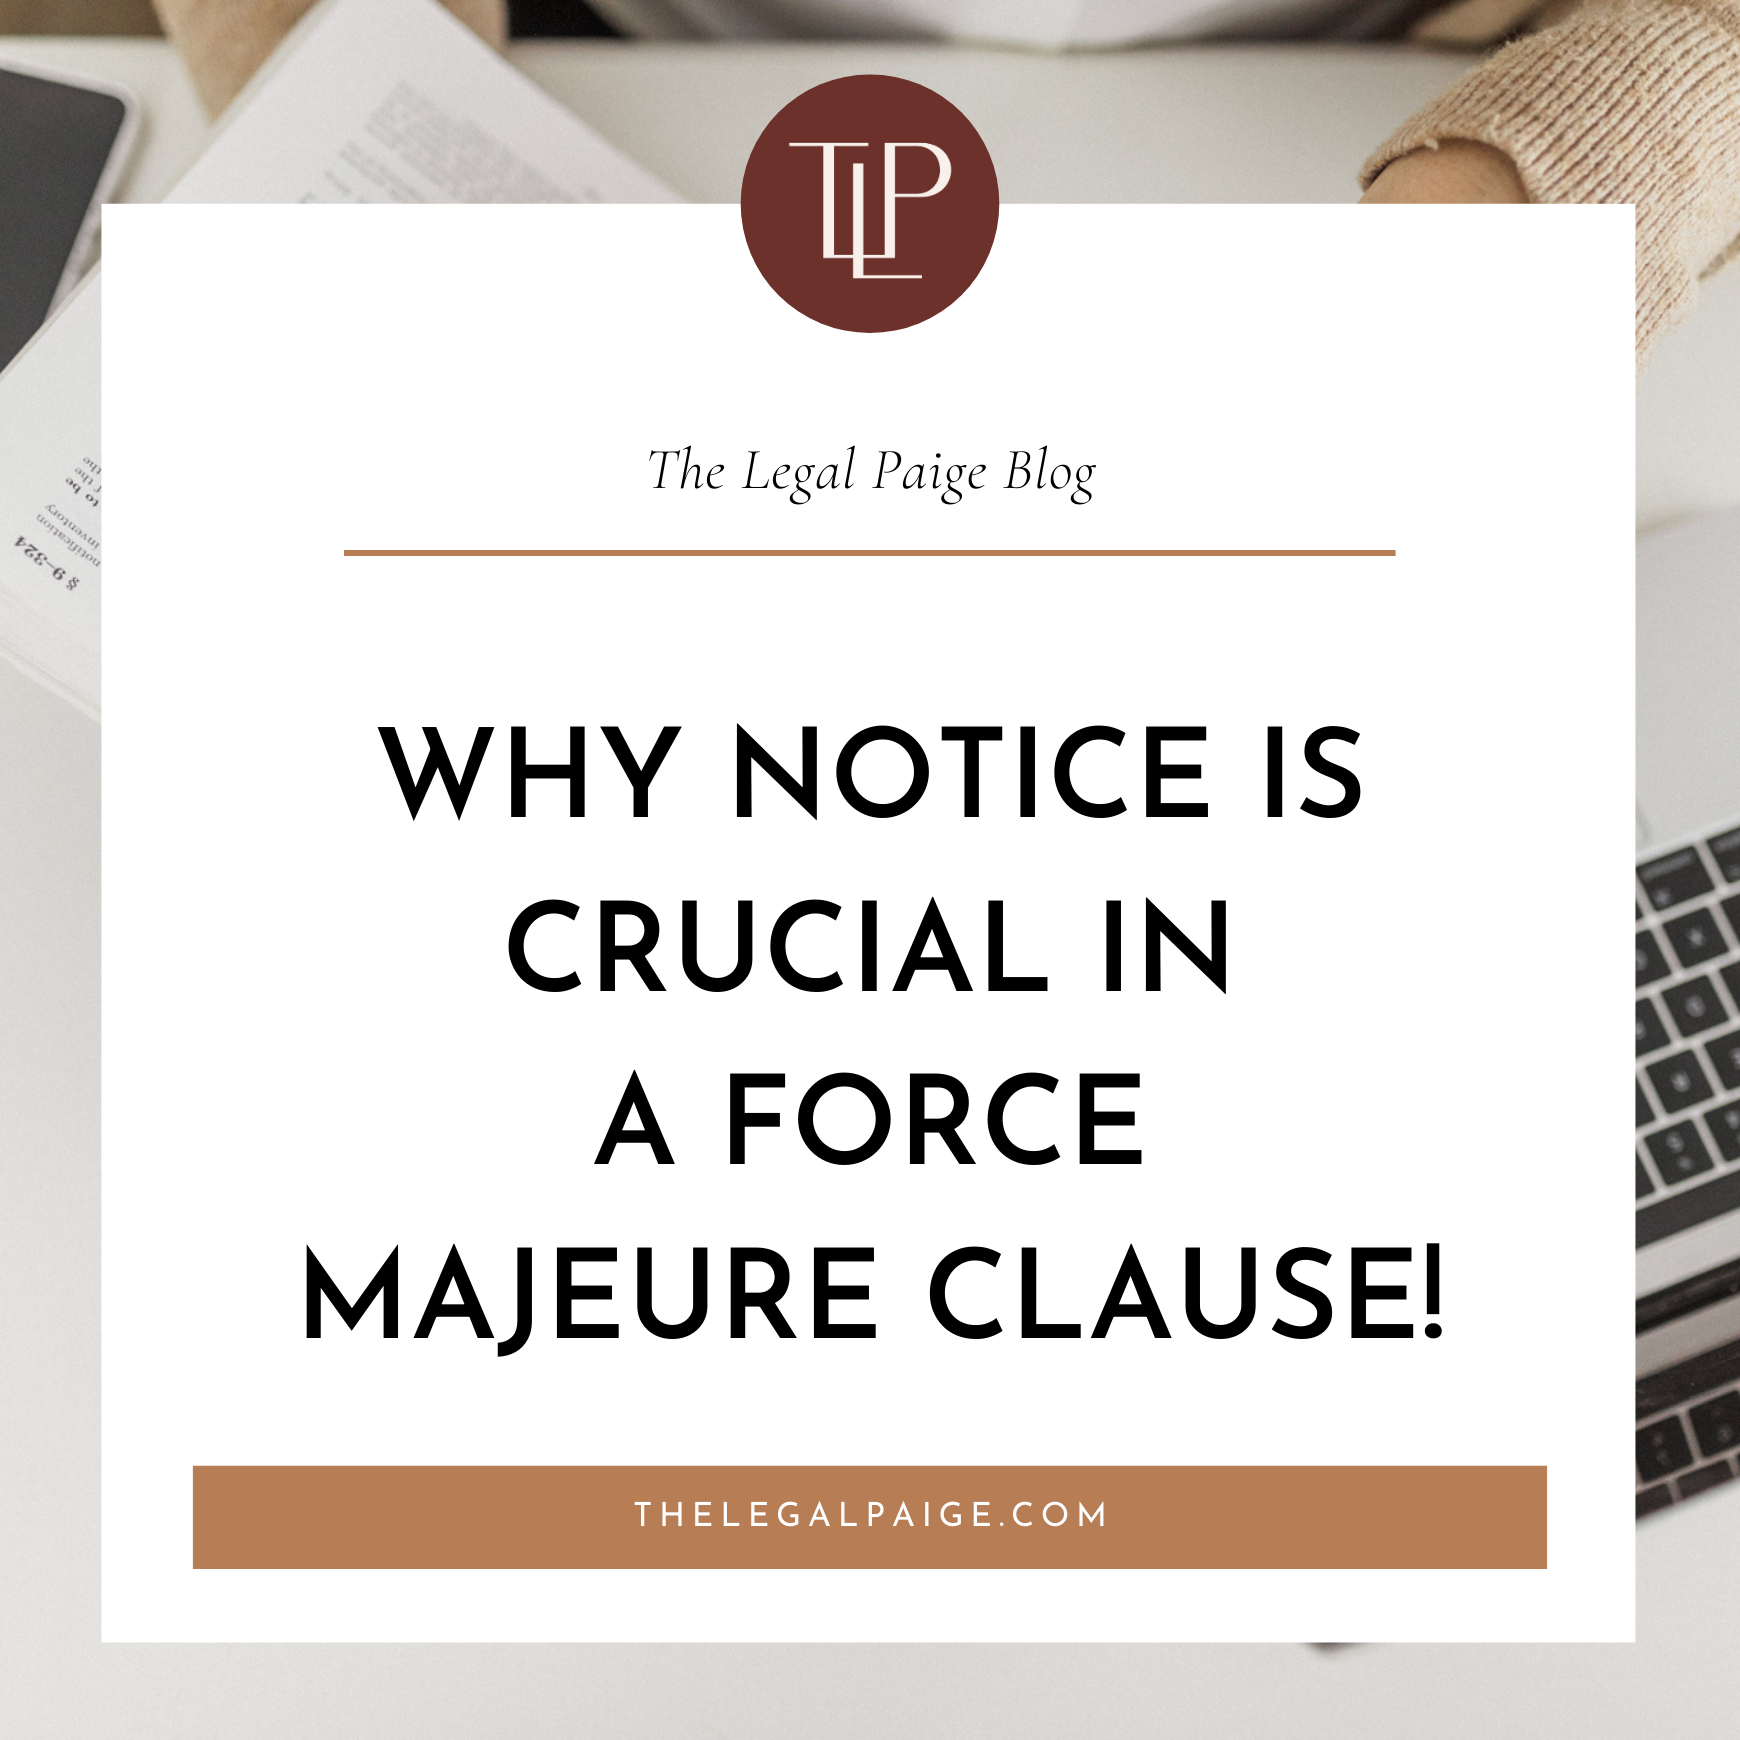 Why NOTICE Is Crucial In A Force Majeure Clause!